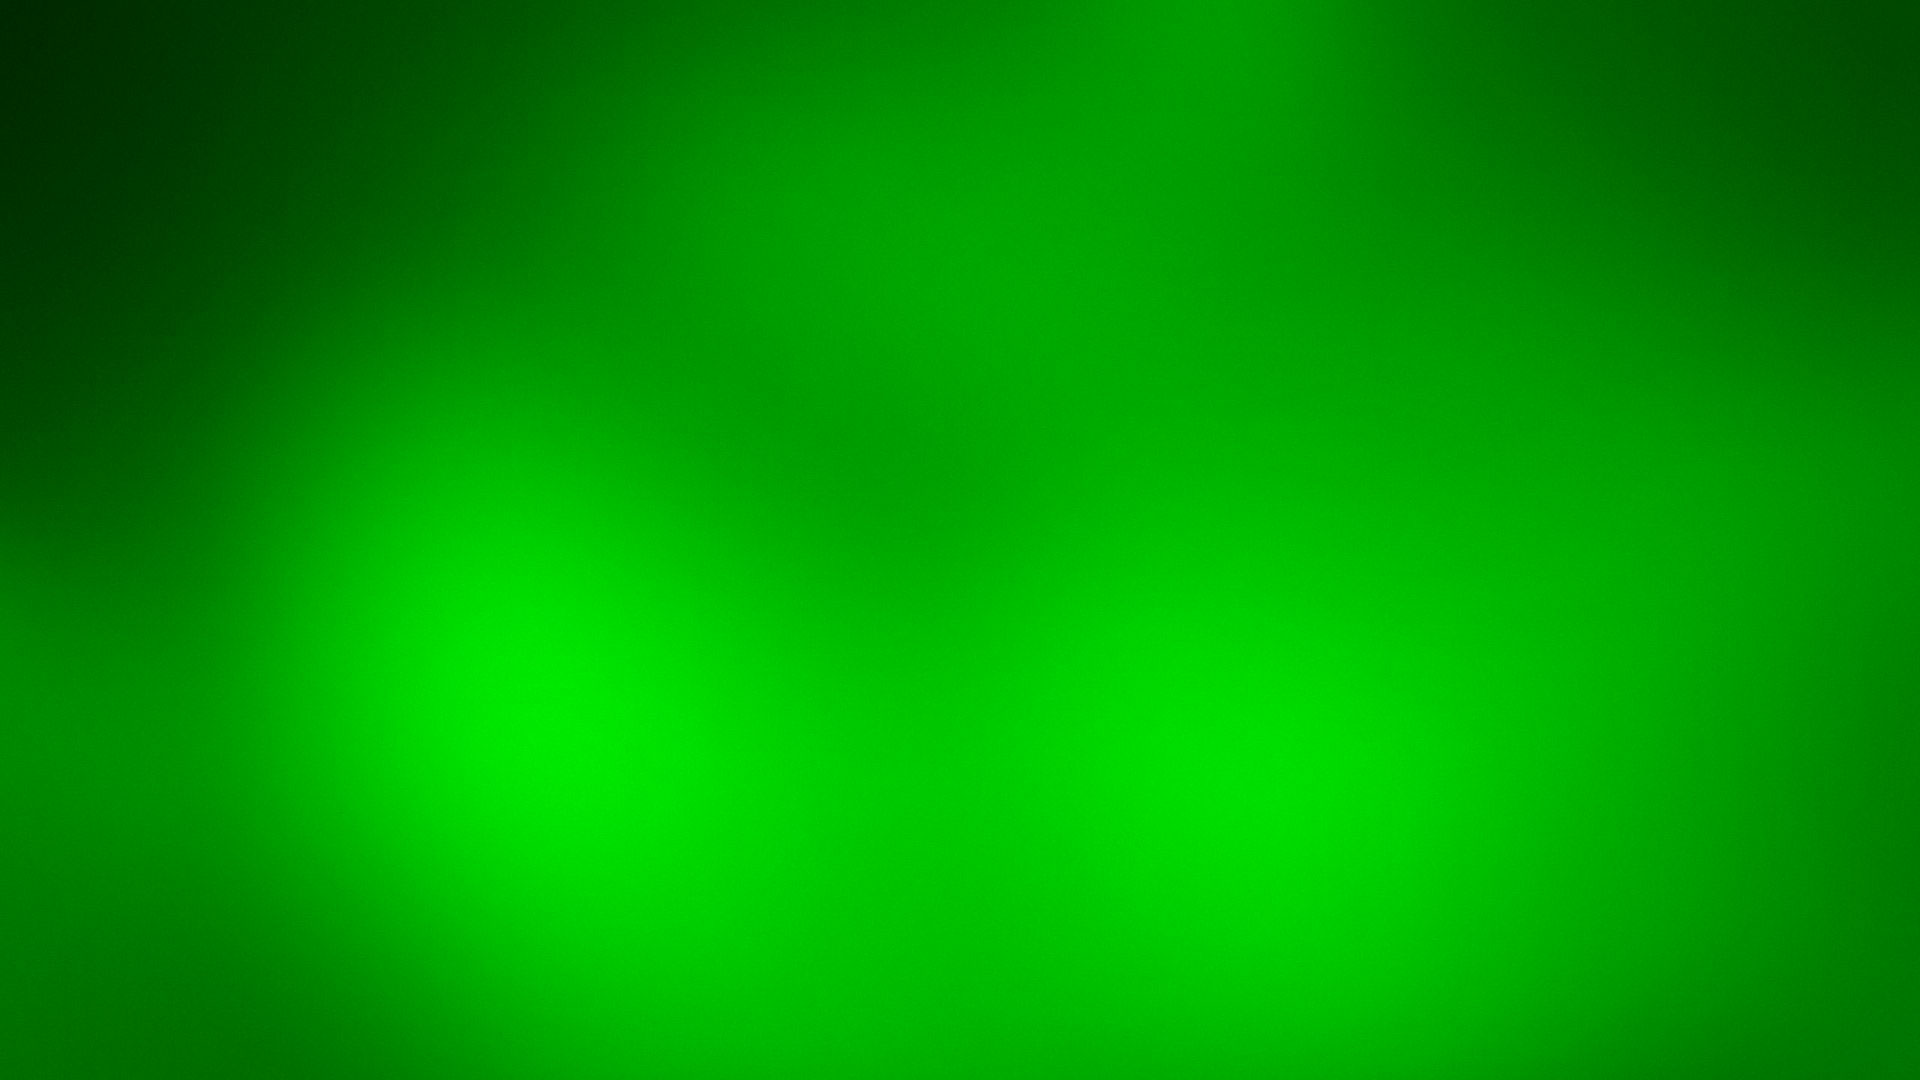 gussian-blur-green